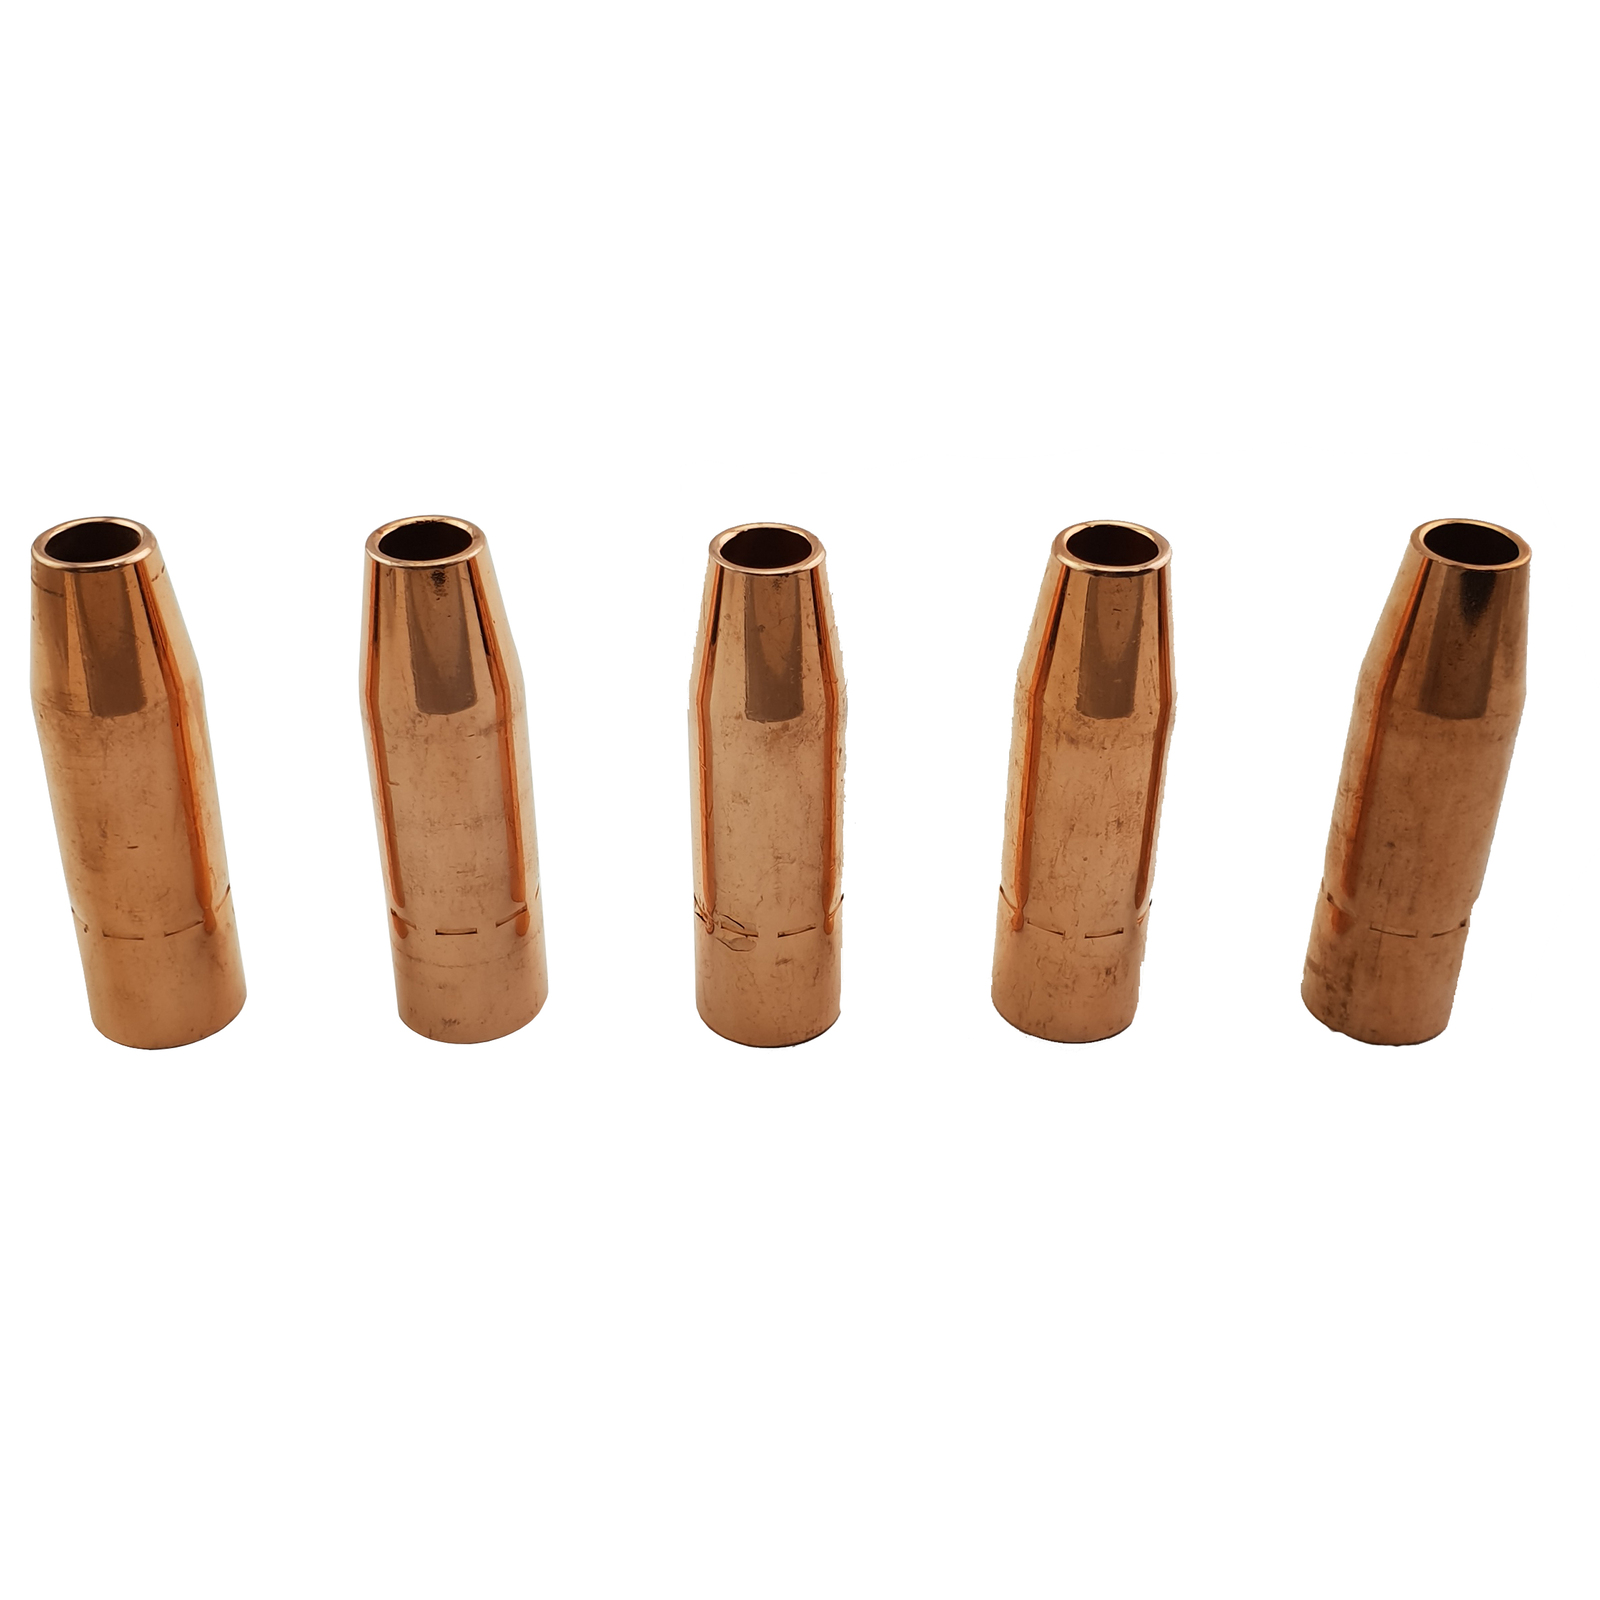 TWECO #2 Style MIG Gas Nozzle / Shroud 13mm - 5 Pack